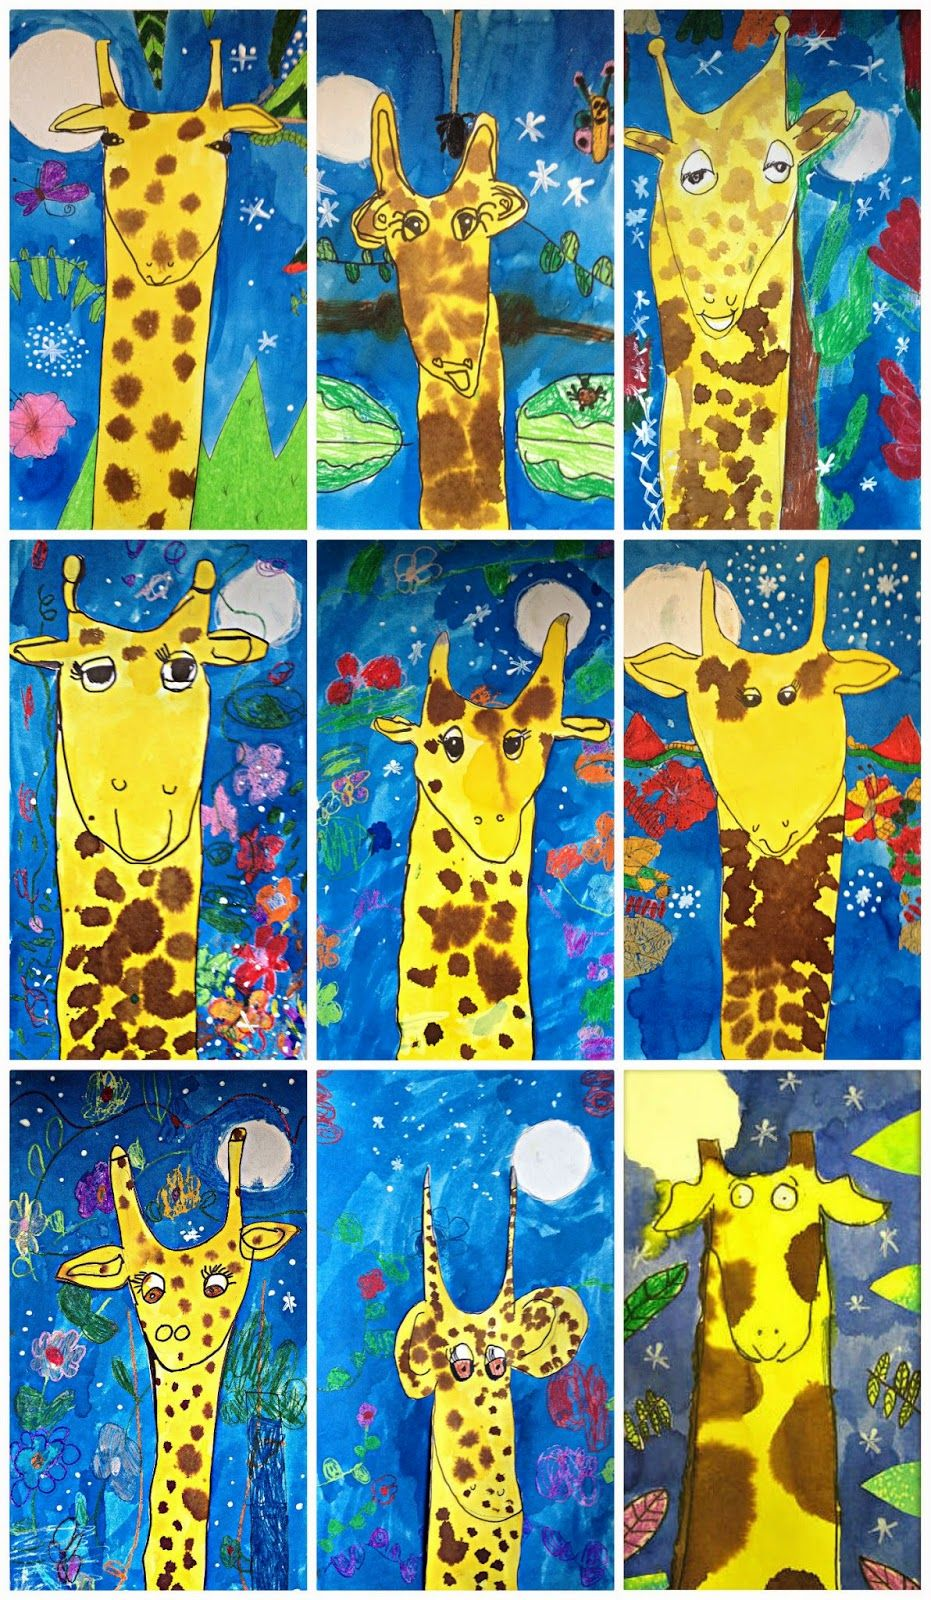 Homemade Dinosaur Craft further A Df Aff F B Aa Ad Ce besides Paper Collages Based On Books as well Giraffes Dance Kid Craft likewise Img. on dance giraffe craft